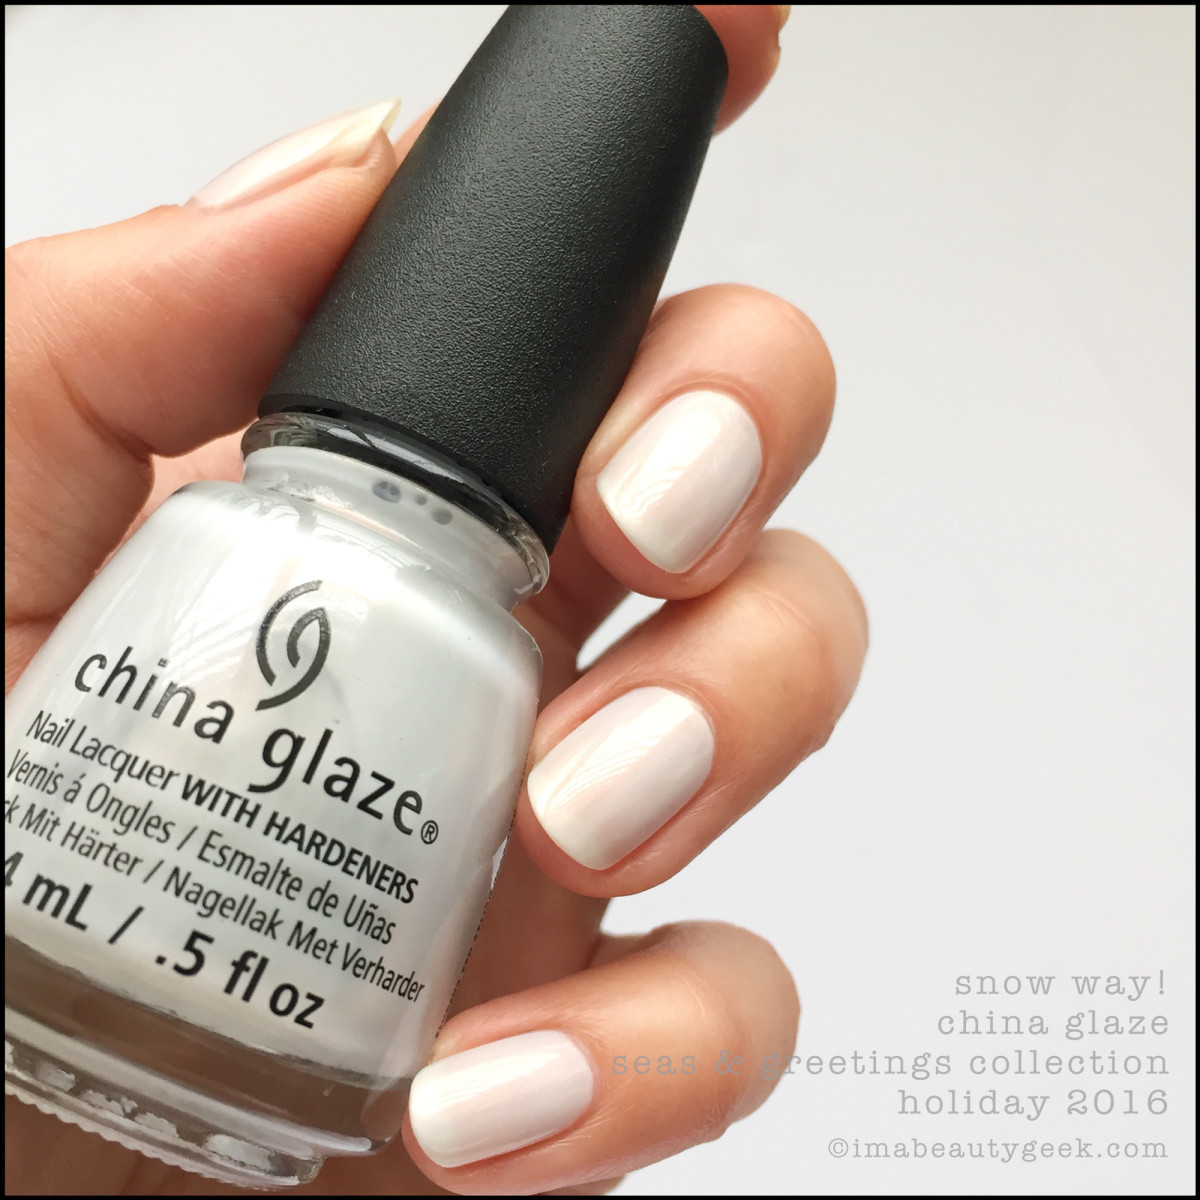 China Glaze Snow Way Holiday 2016_China Glaze Seas and Greetings Collection Swatches Review1